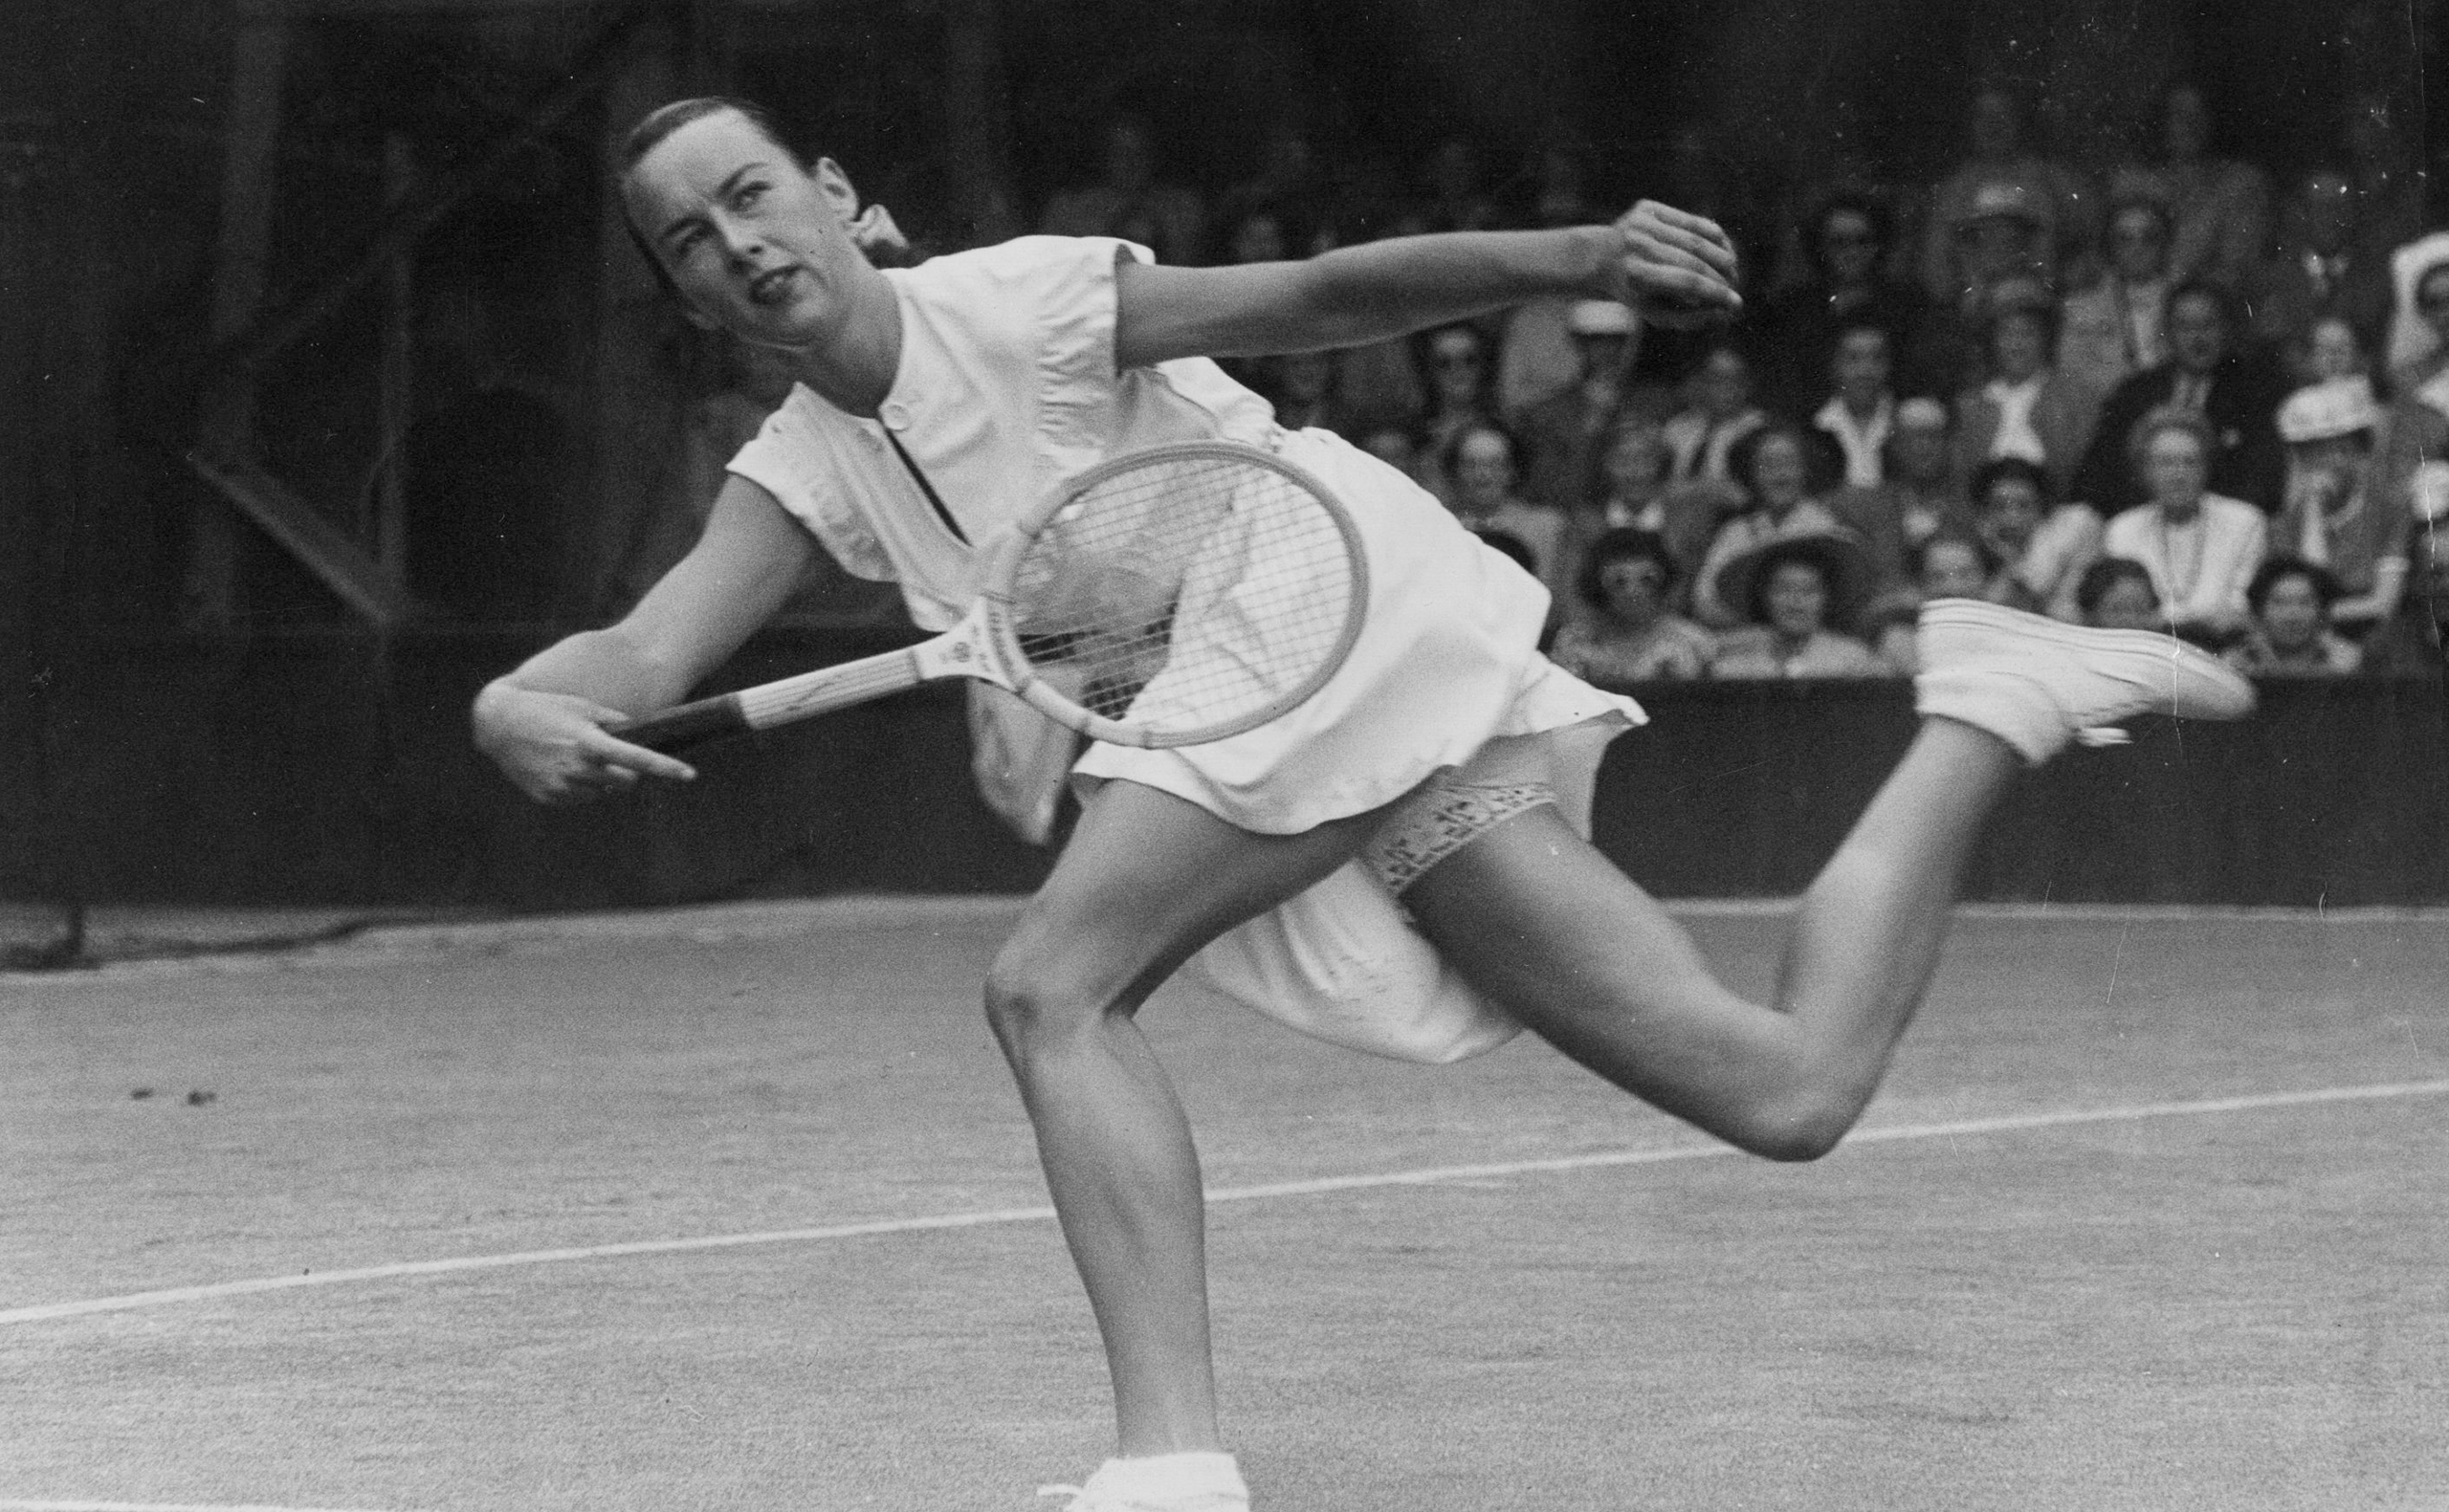 American tennis player Gertrude Moran, or Gorgeous Gussie, on her way to beating F M Wilford at Wimbledon in 1949